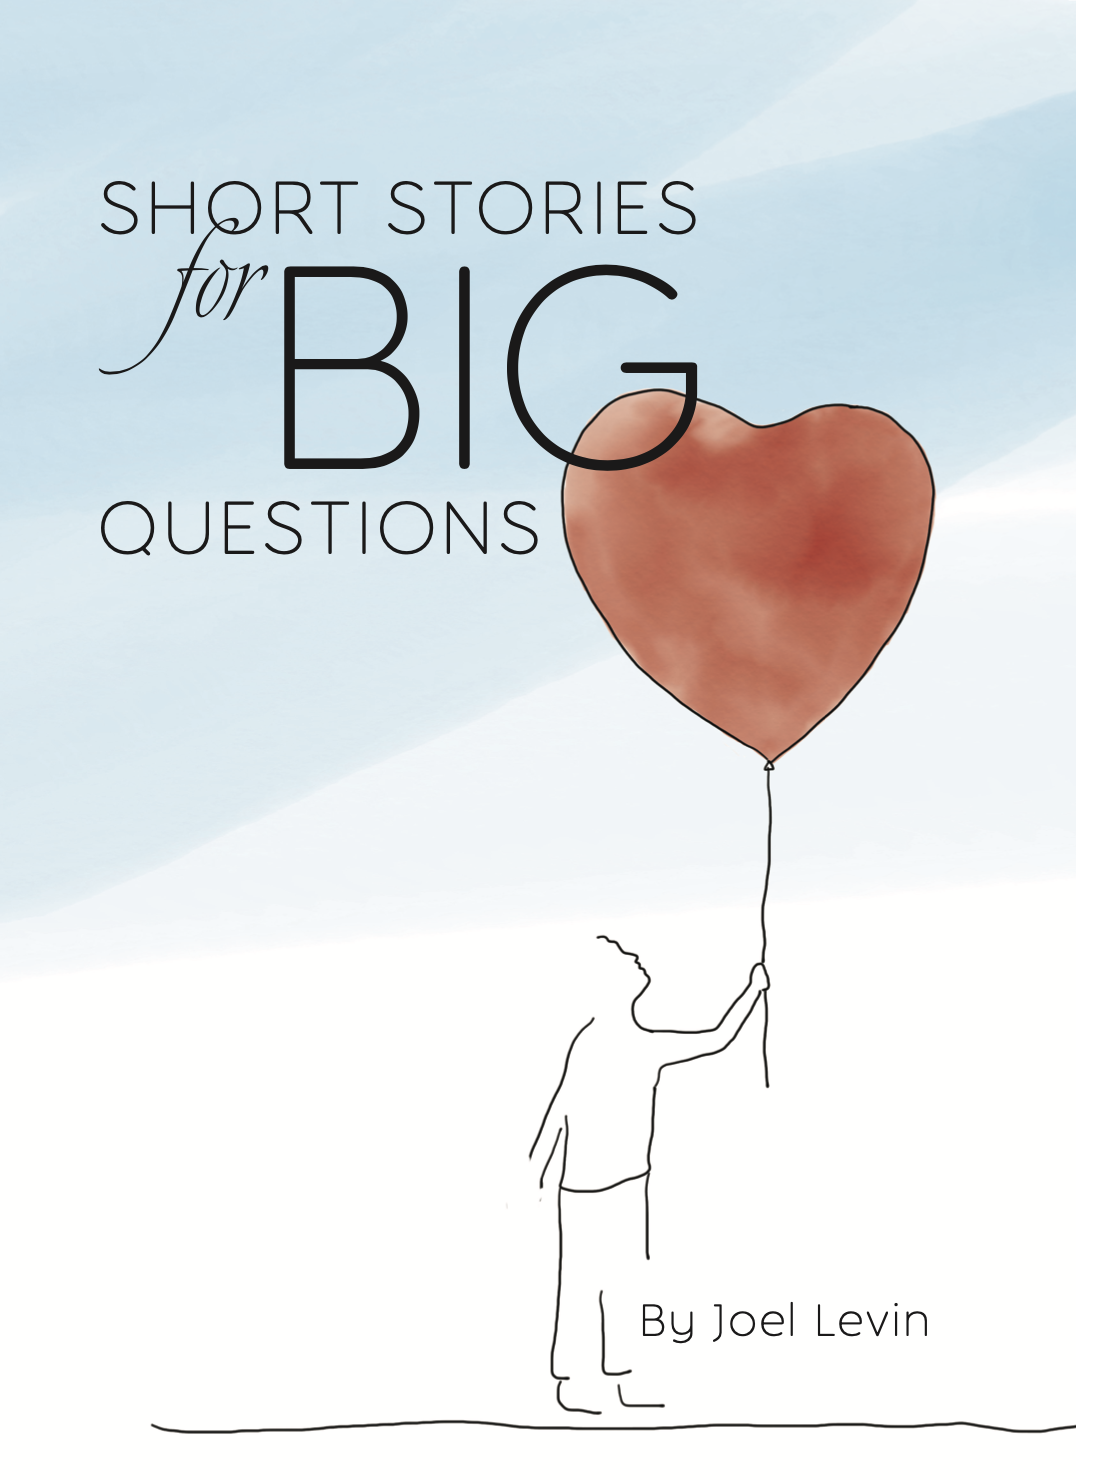 Short Stories for Big Questions